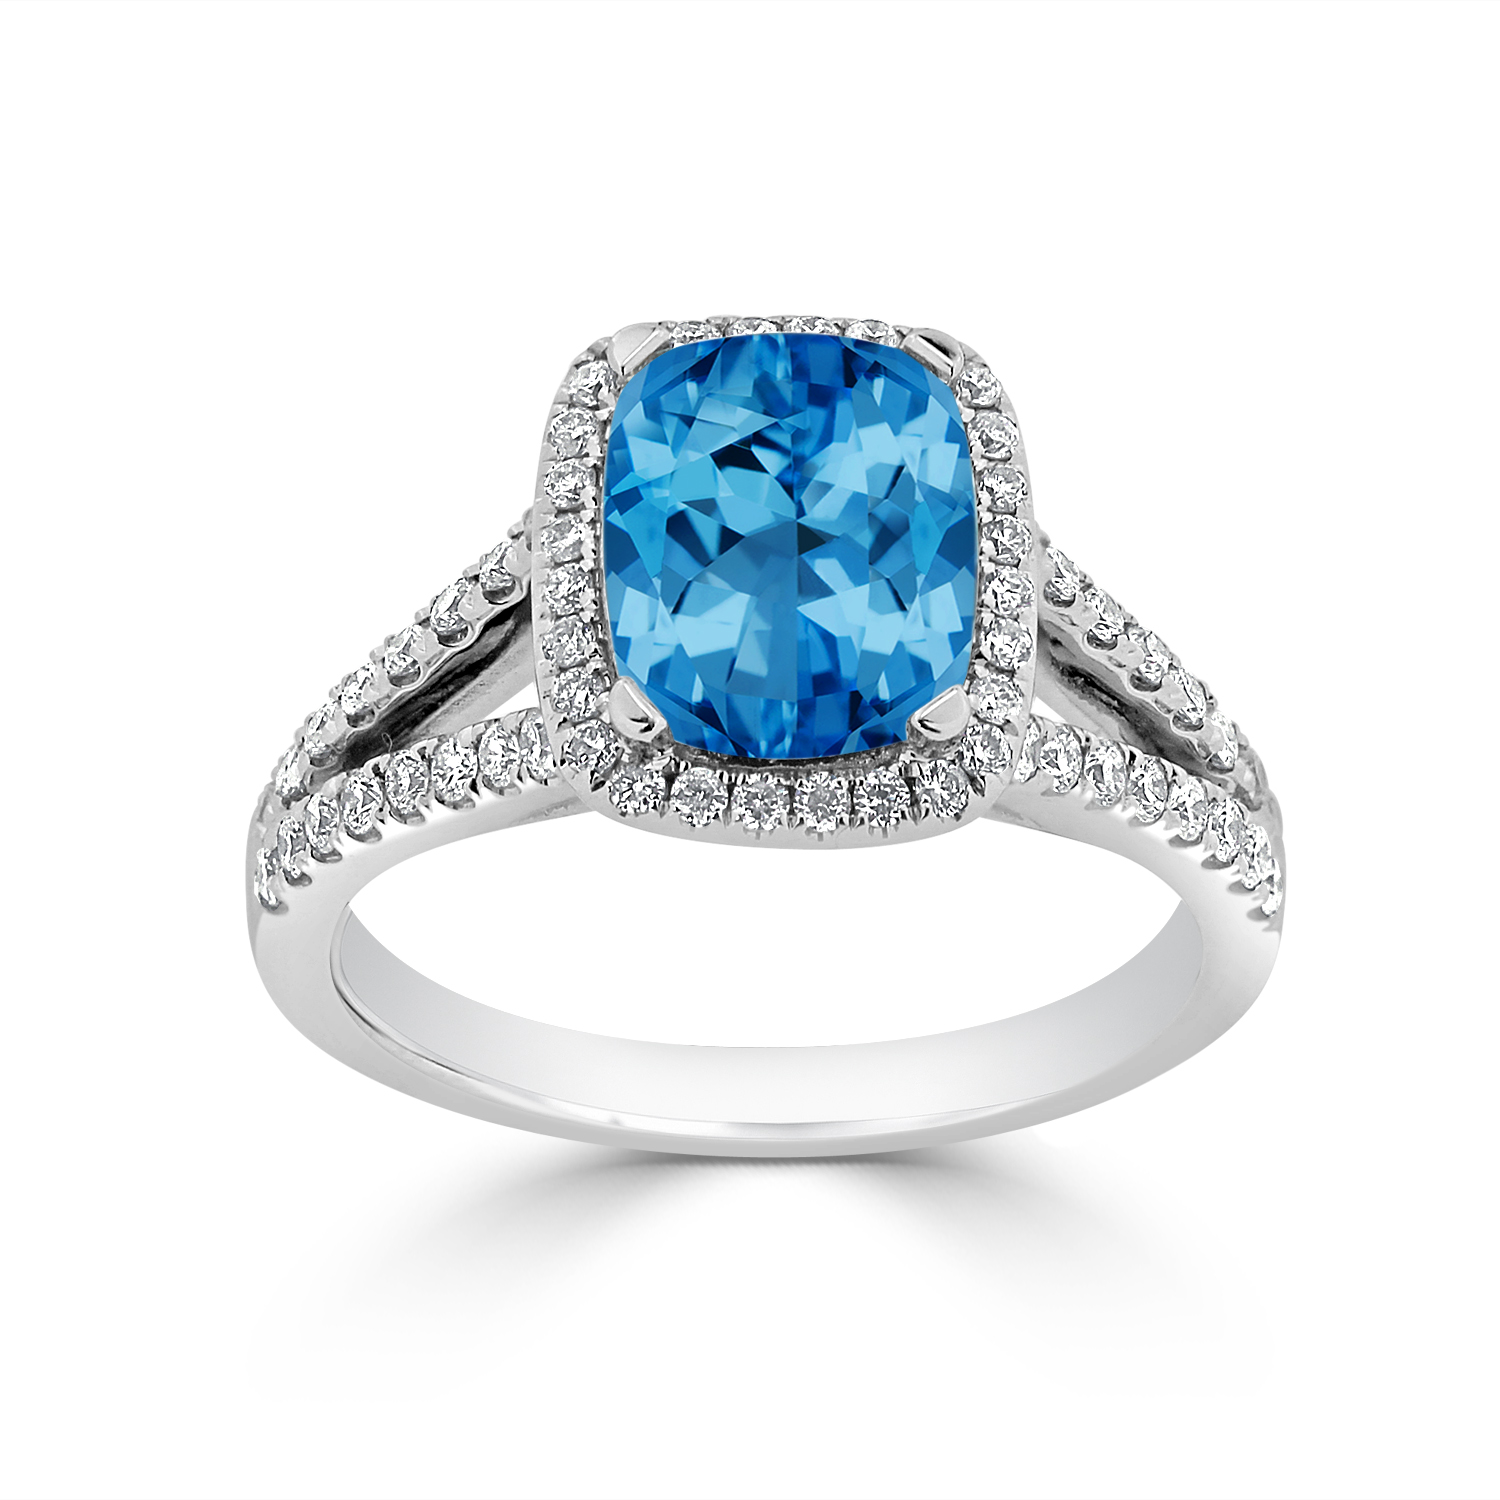 Halo Swiss Blue Topaz Diamond Ring in 14K White Gold with 1.60 carat Cushion SwissBlue Topaz